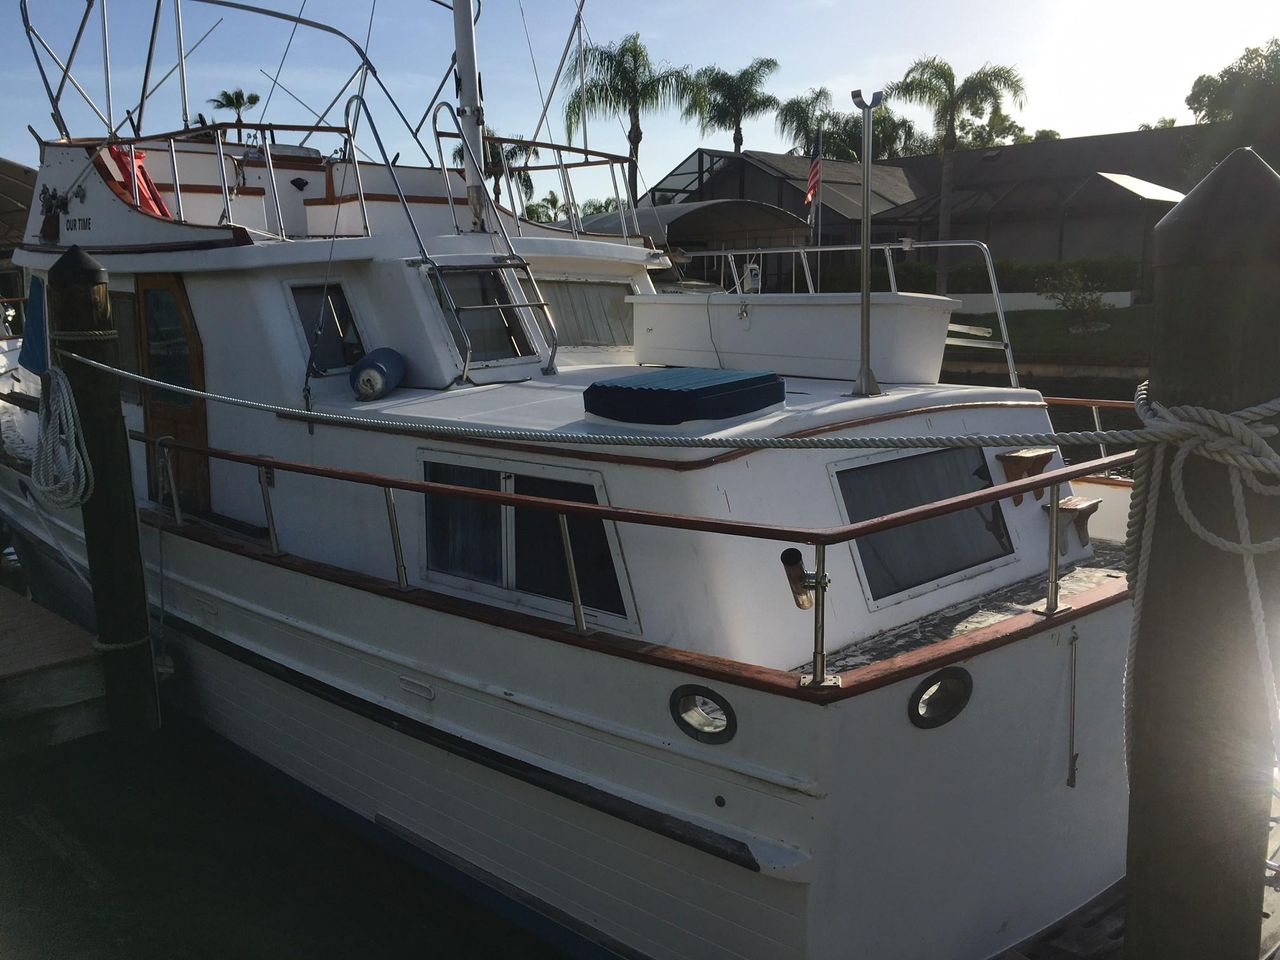 Mkgswg moreover Cc Dd De Af Ae Bca in addition B Bff Ea Xl together with Bf Eb De F C Aef Liveaboard Boats Scuba Diving additionally B D Ac A Ff Xl. on albin trawler yachts for sale florida